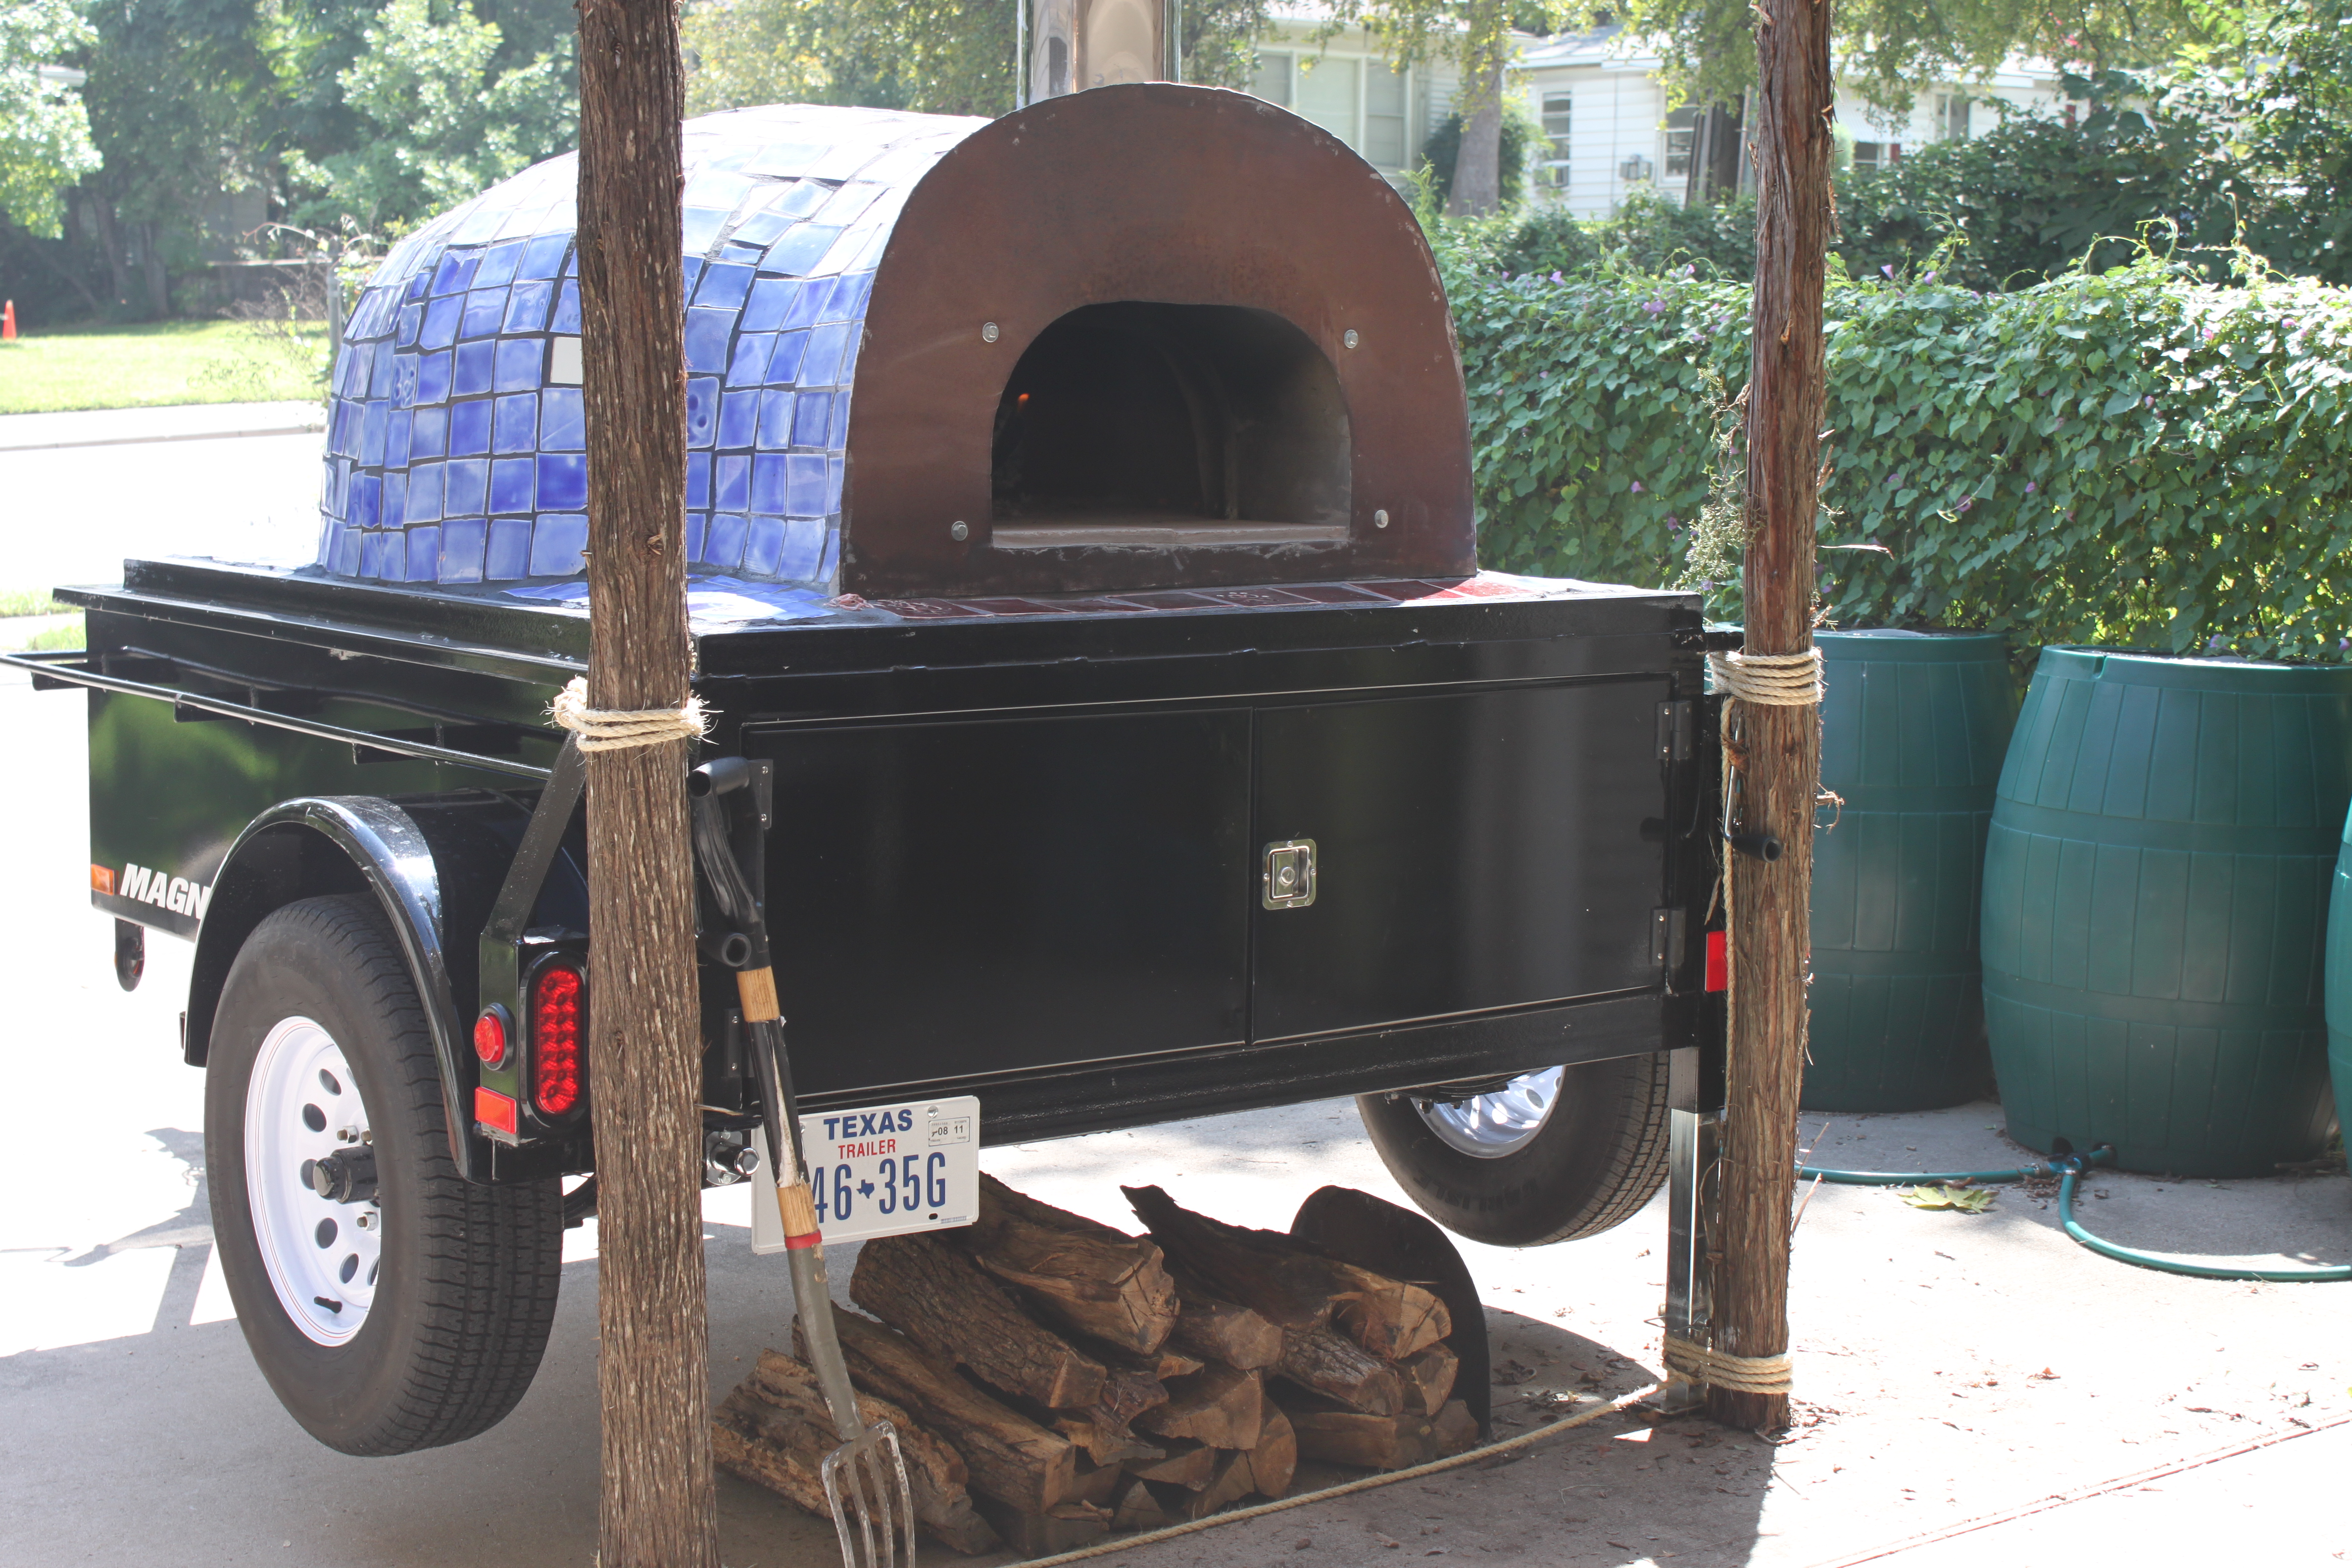 Portable Wood Fired Pizza Oven PlansDownload Portable Wood Fired Pizza Oven  Plans